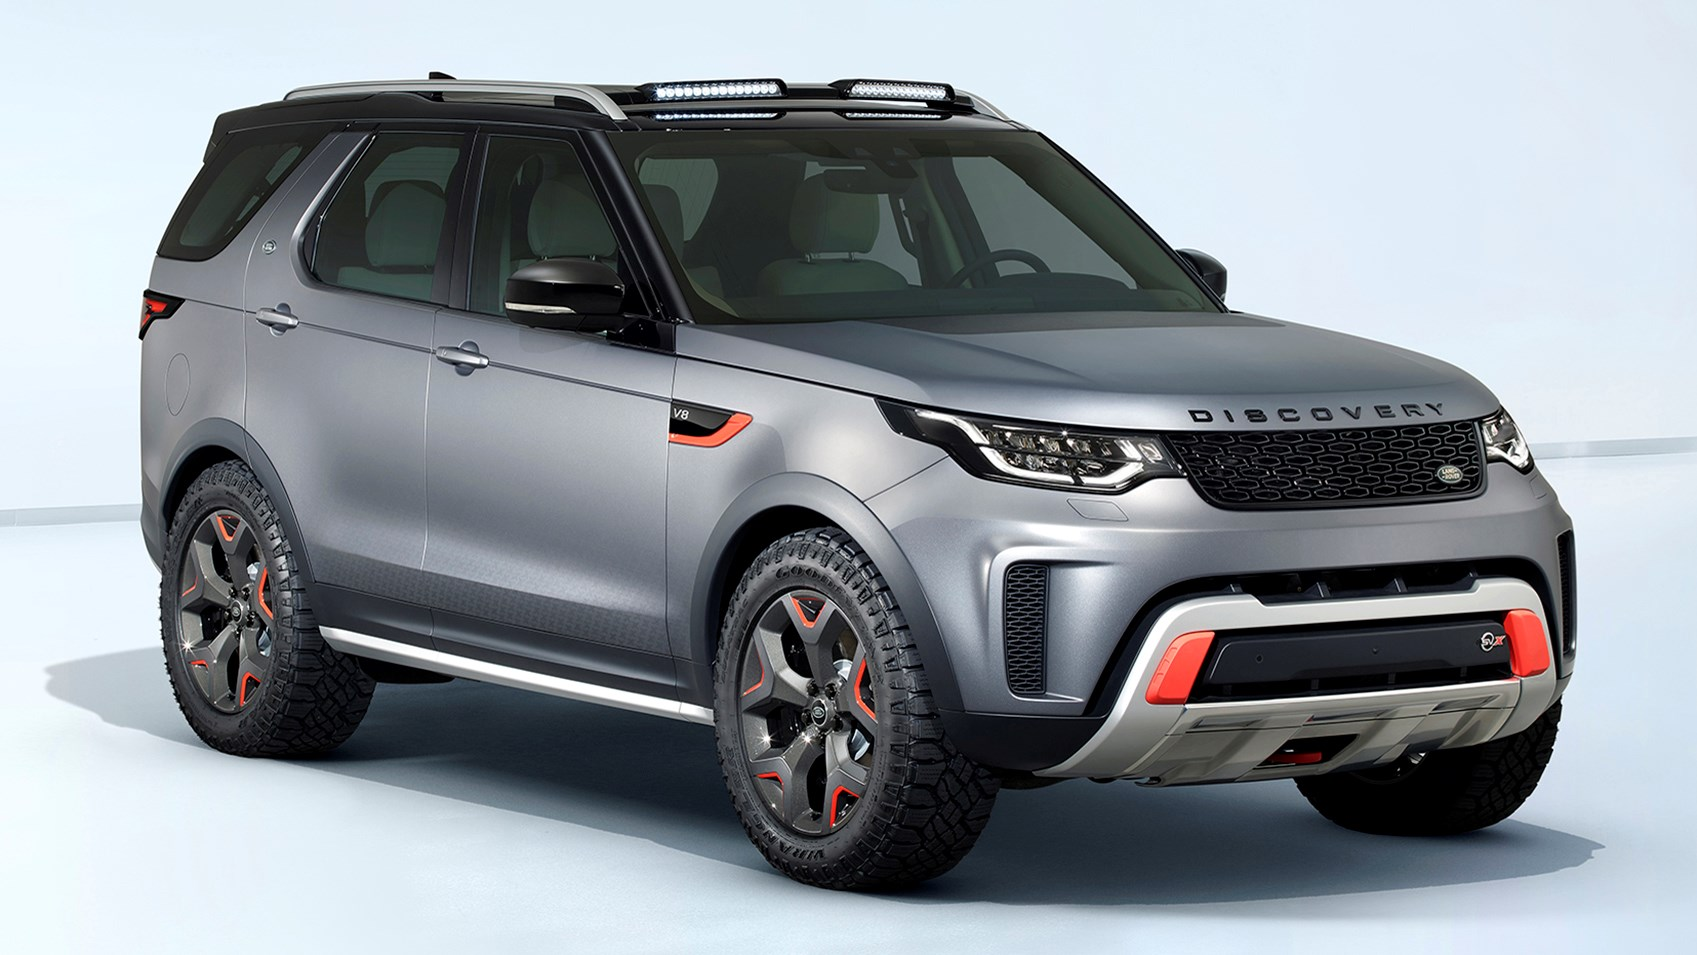 Land Rover Unveils New Discovery Svx At Frankfurt Iaa 2017